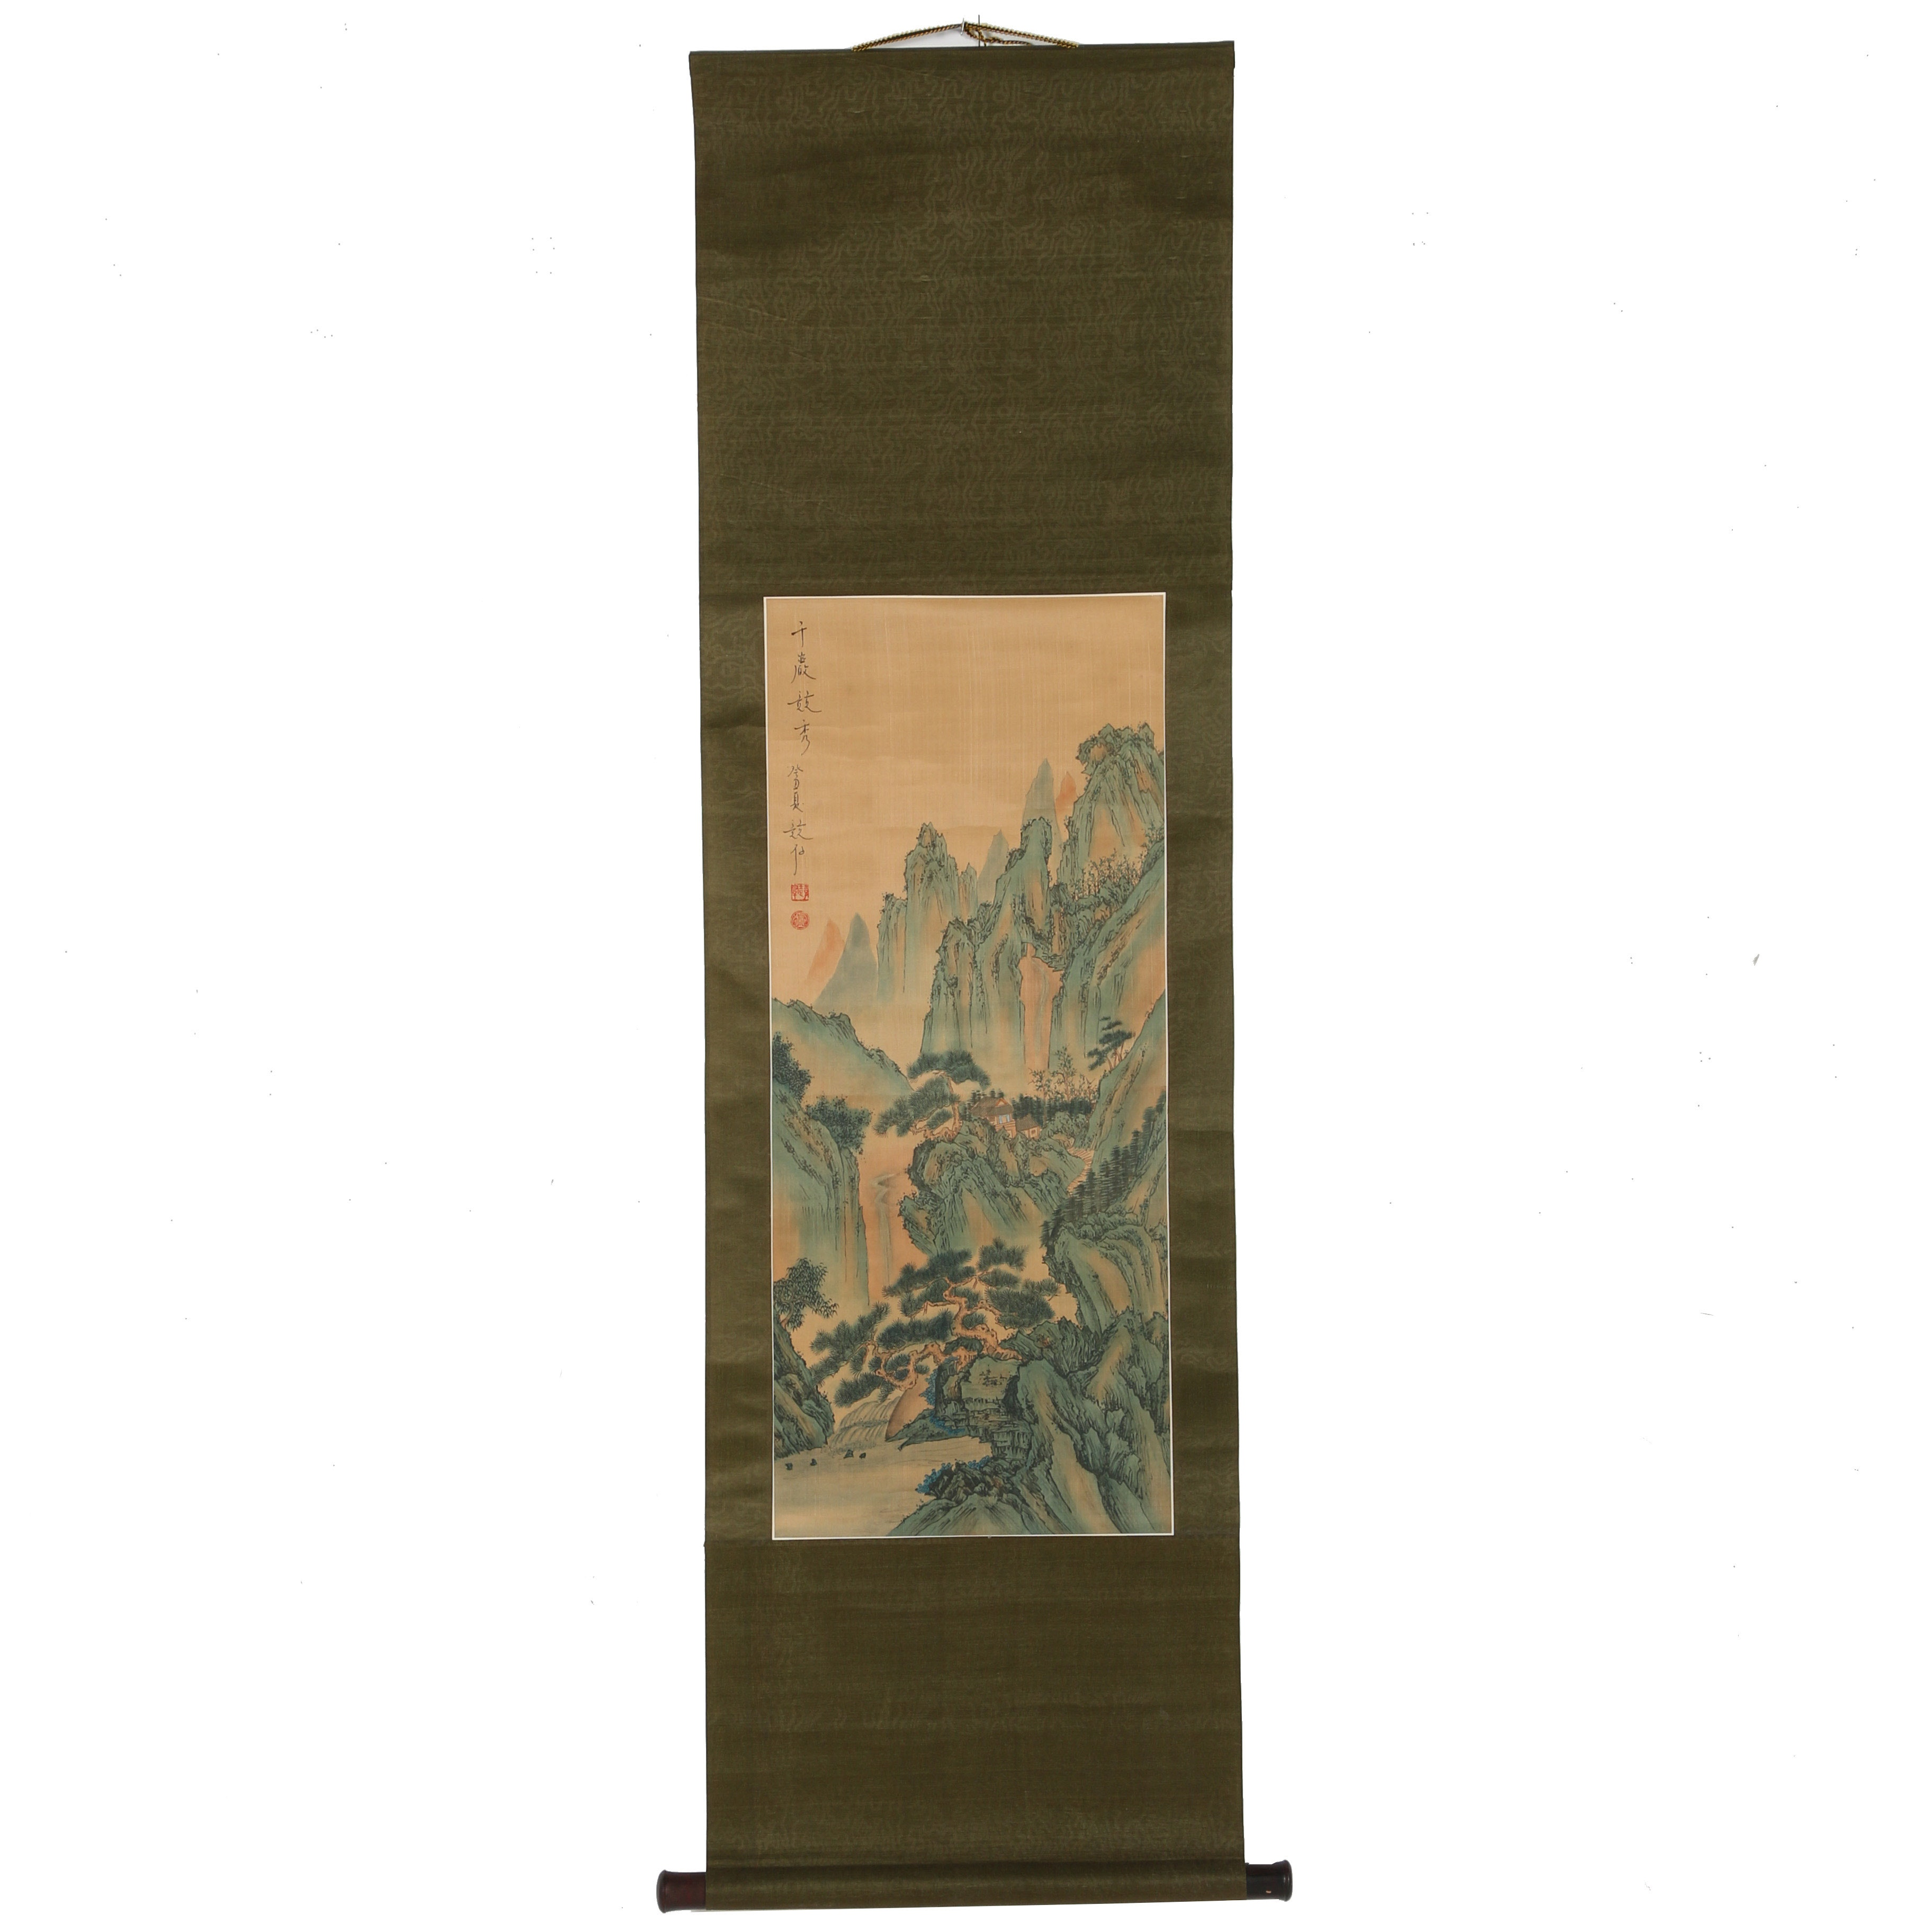 East Asian Style Gouache Scroll Painting on Silk of Landscape